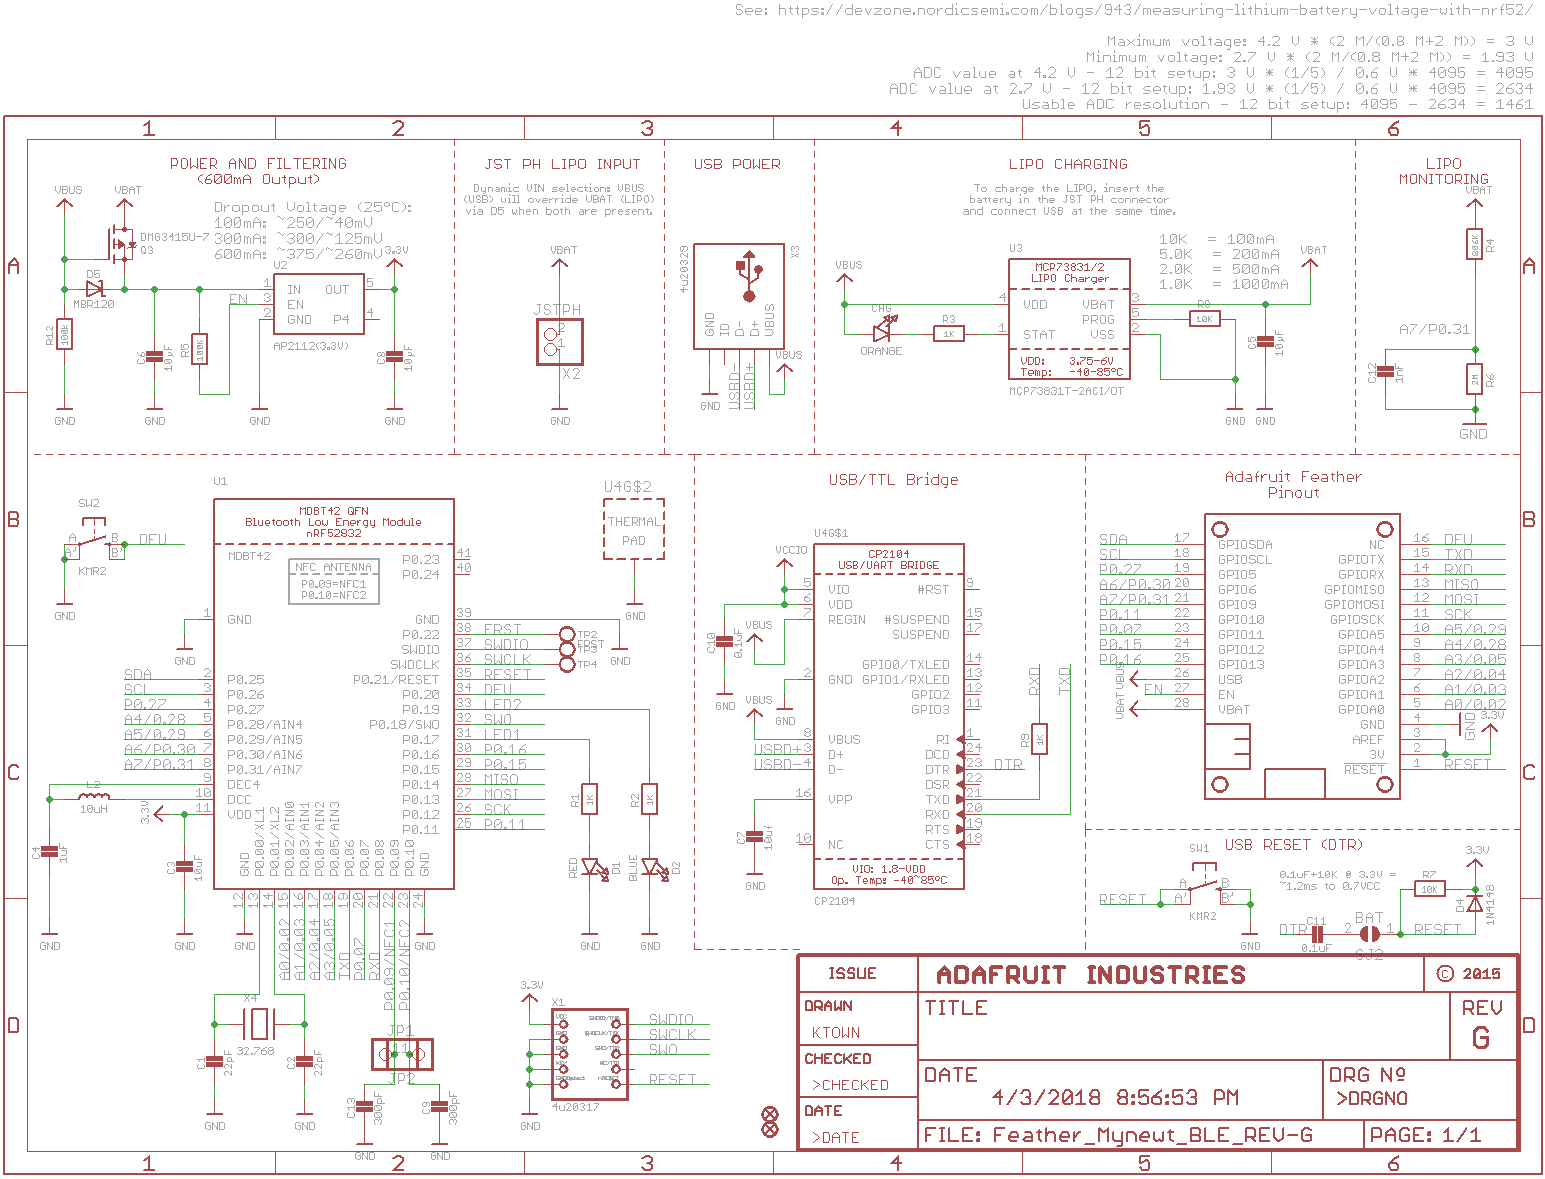 microcontrollers_revgsch.png